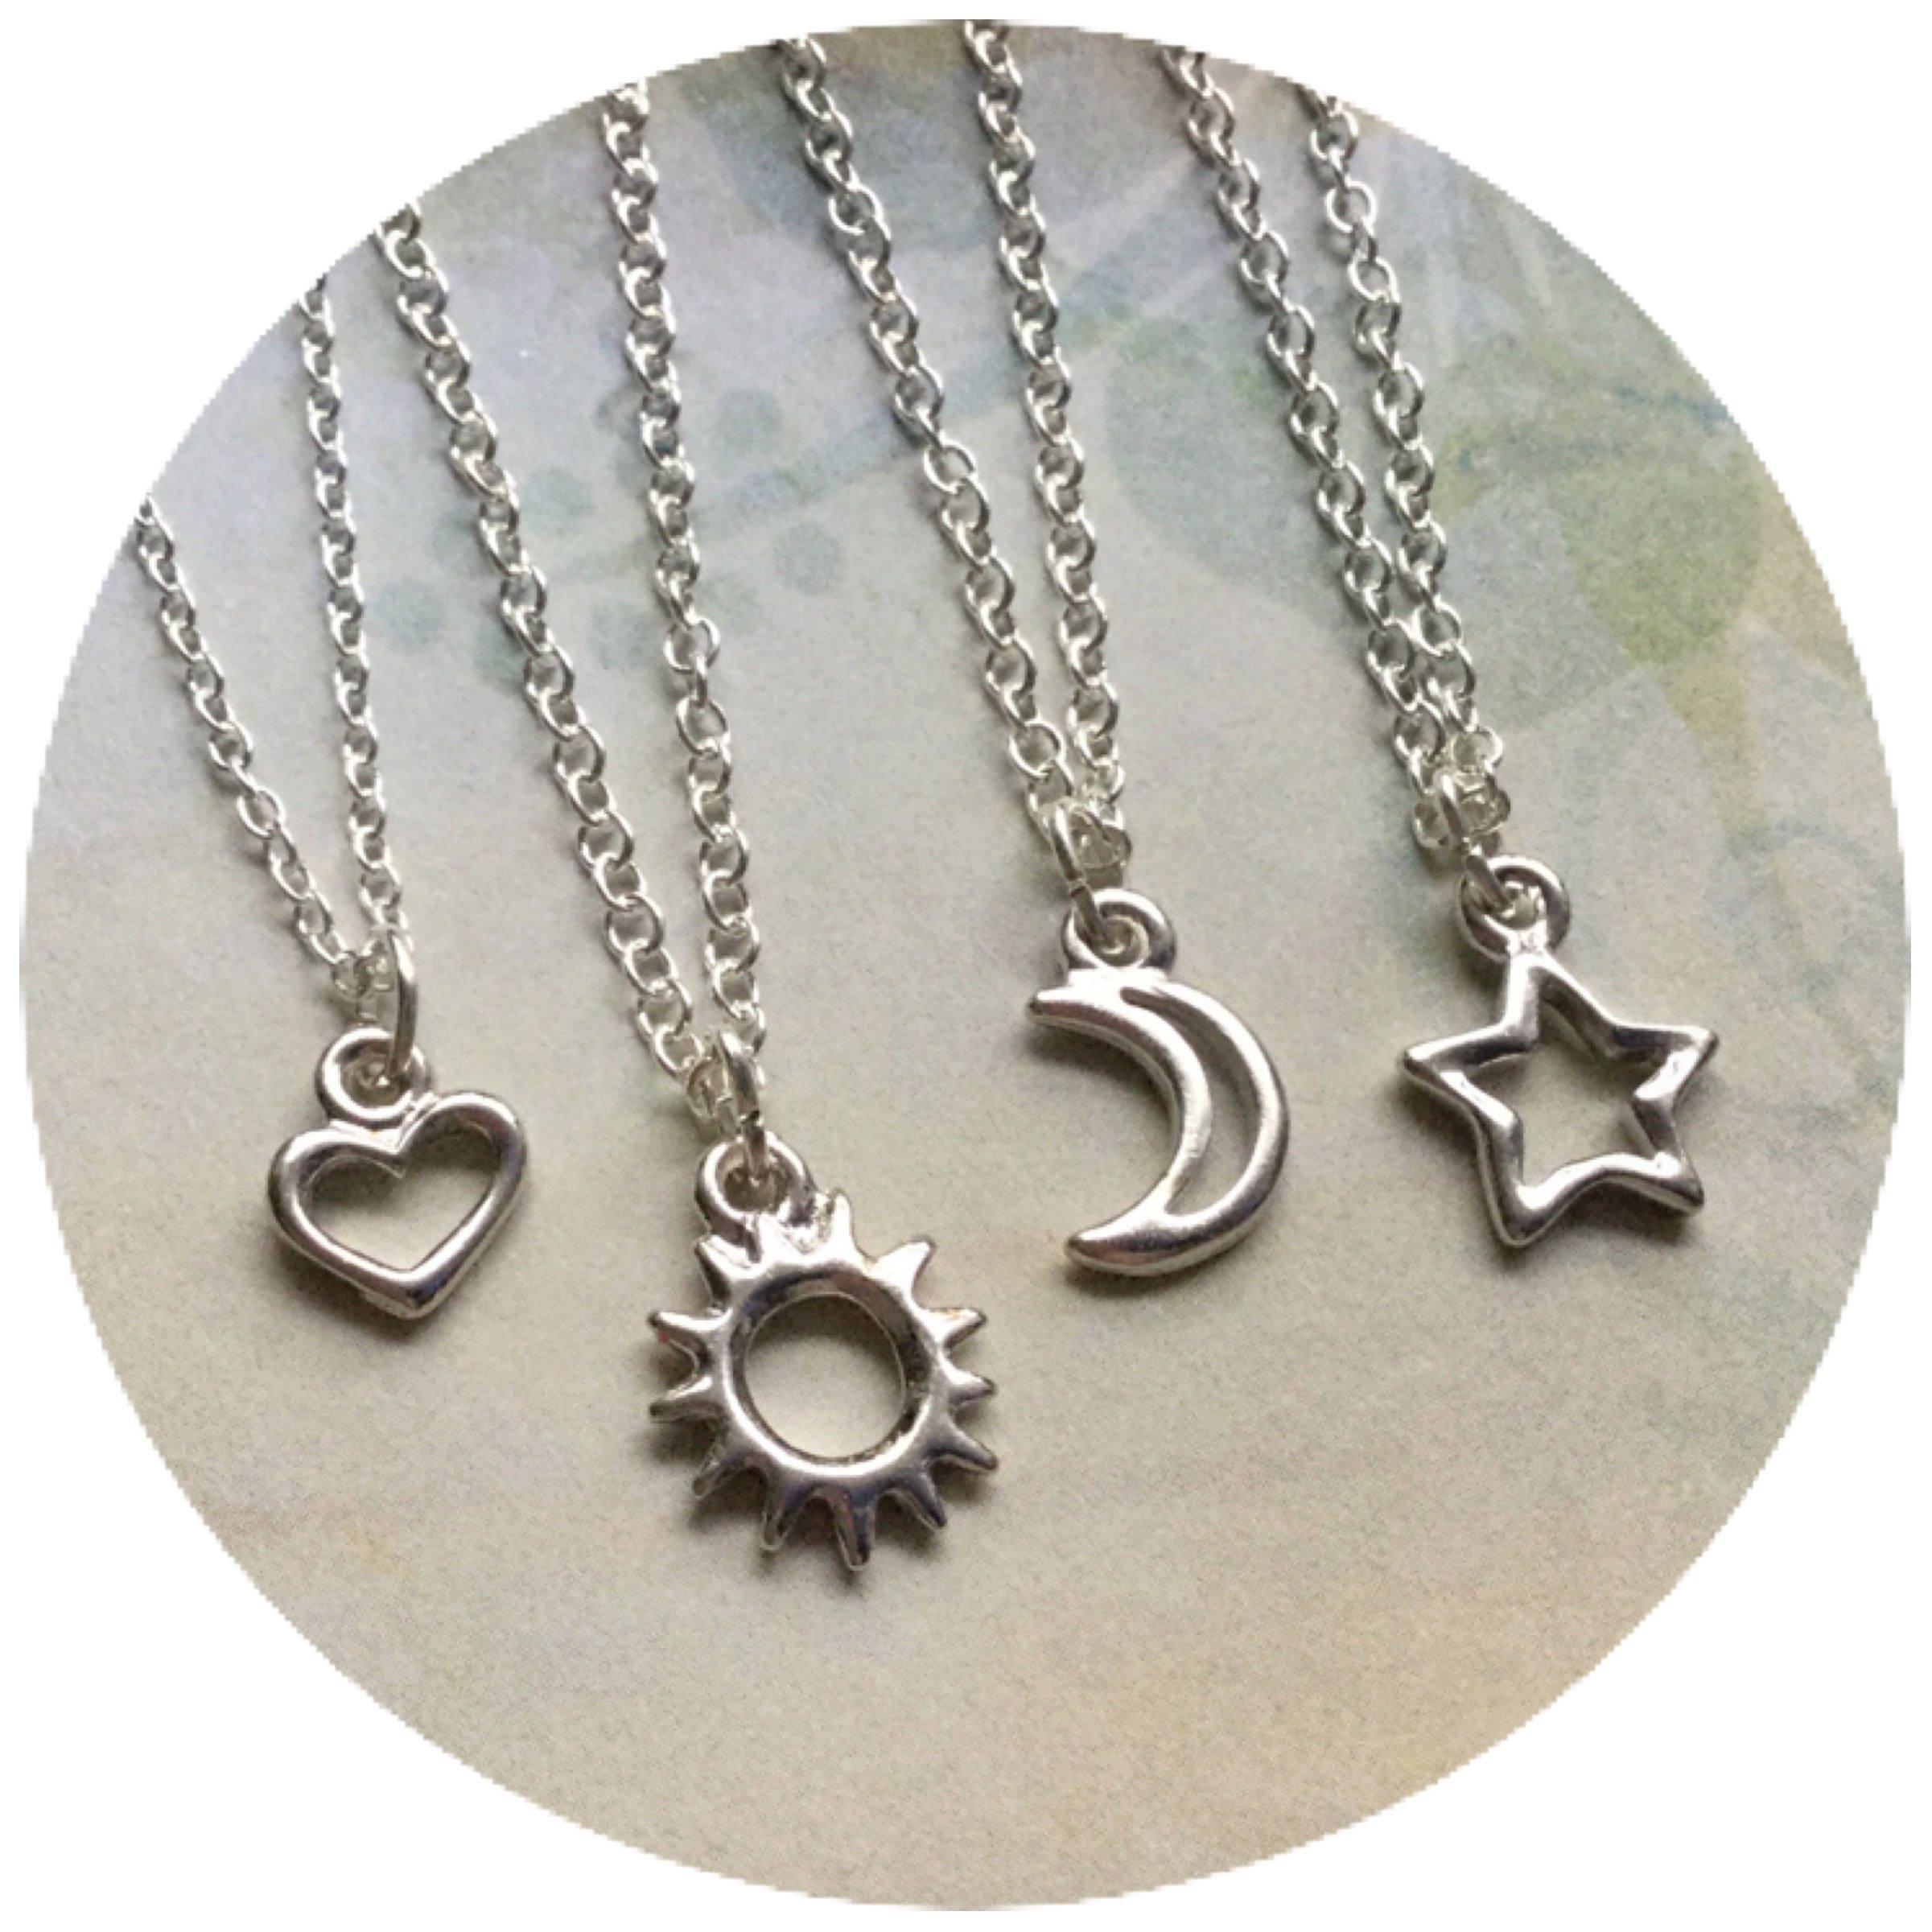 the sun combine a features in silver plain this thailand khun and beautiful star silversmith s moon of products details version necklace o personified celestial pendant pn necklaces sterling handmade embrace by aeravida expert